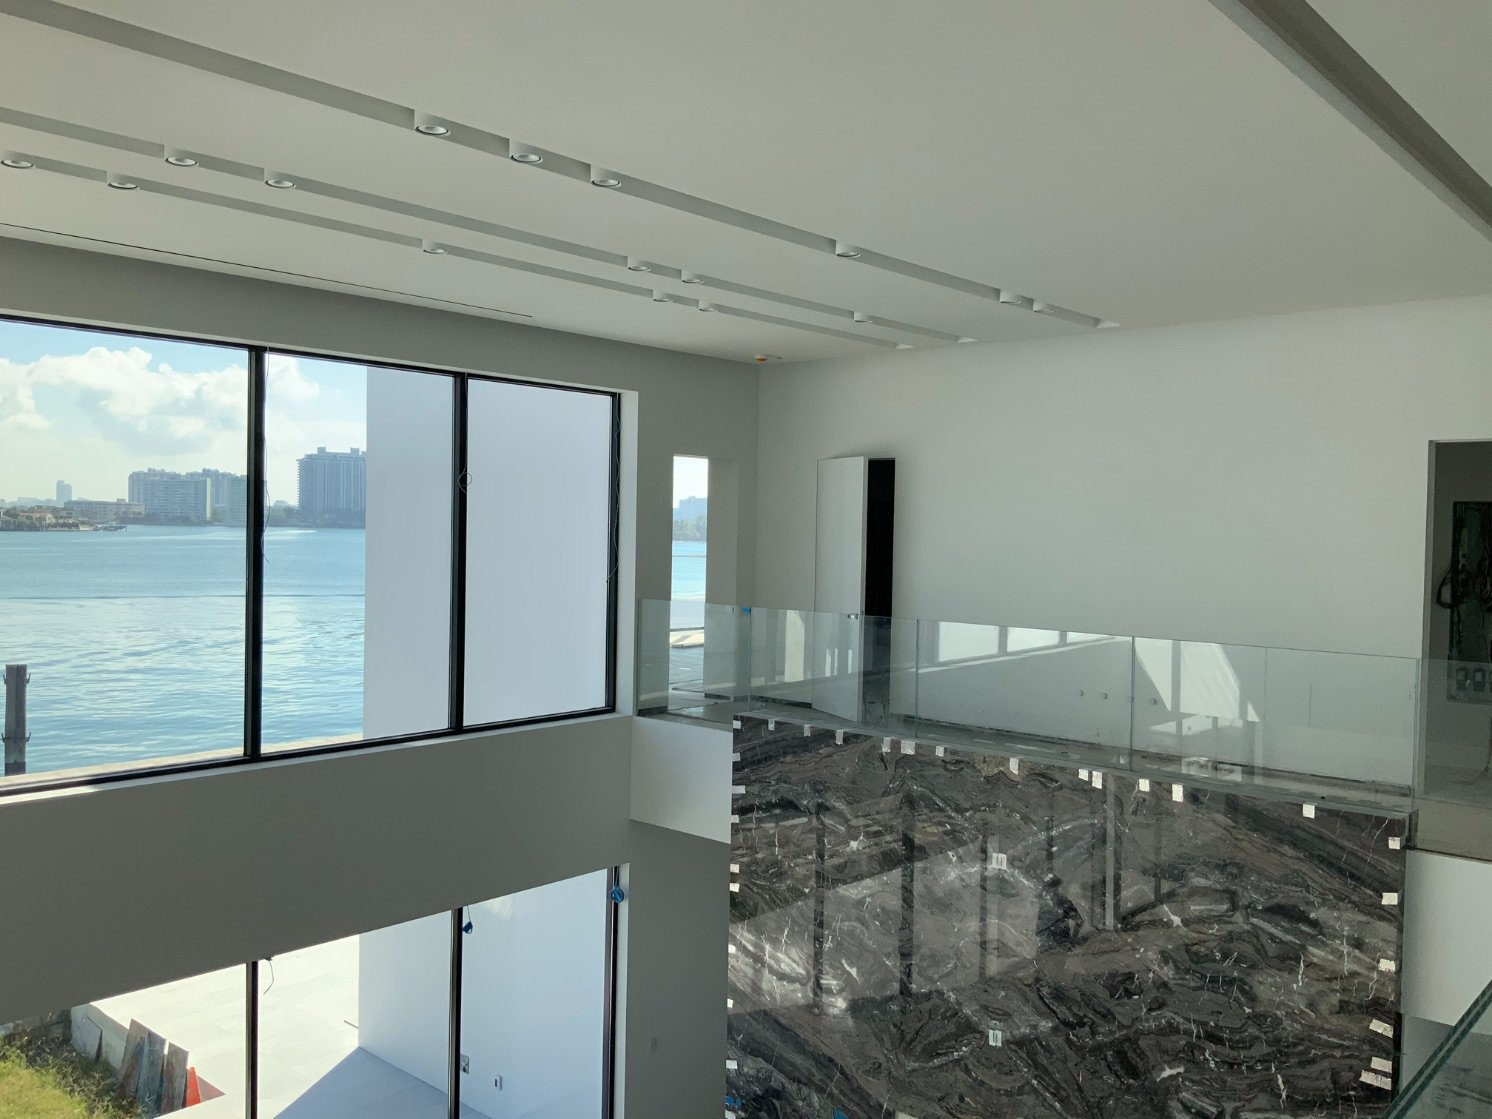 Bradleigh Applications Inc Acoustical Plaster using BASWAphon at Hibiscus Island Private Residence